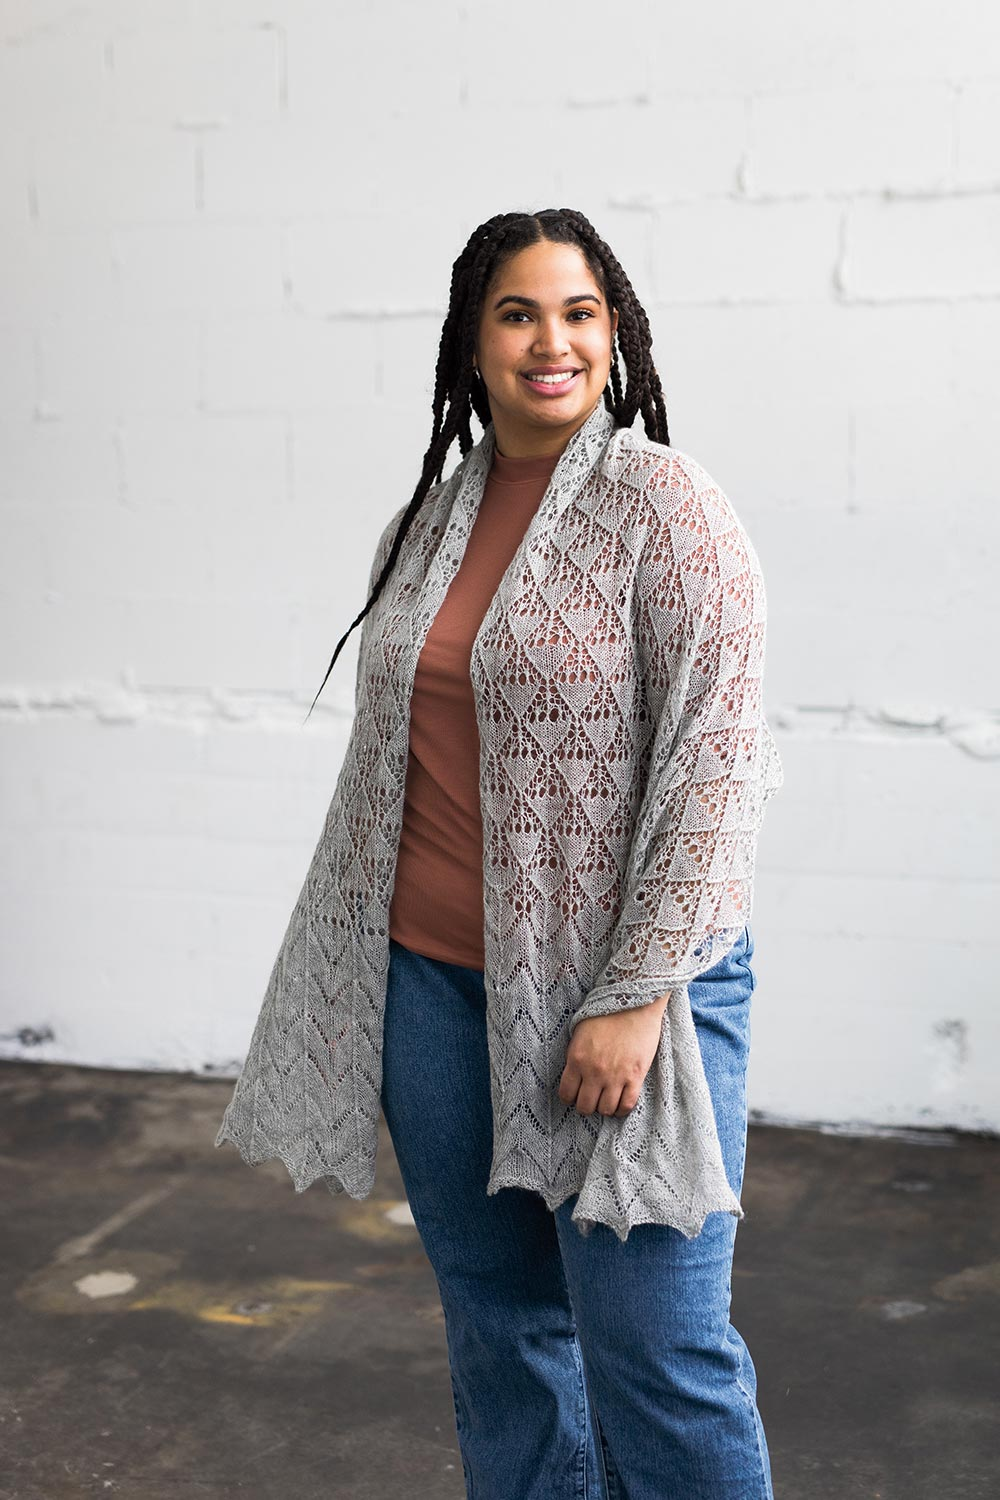 Rectangular lace shawl draped over shoulders.